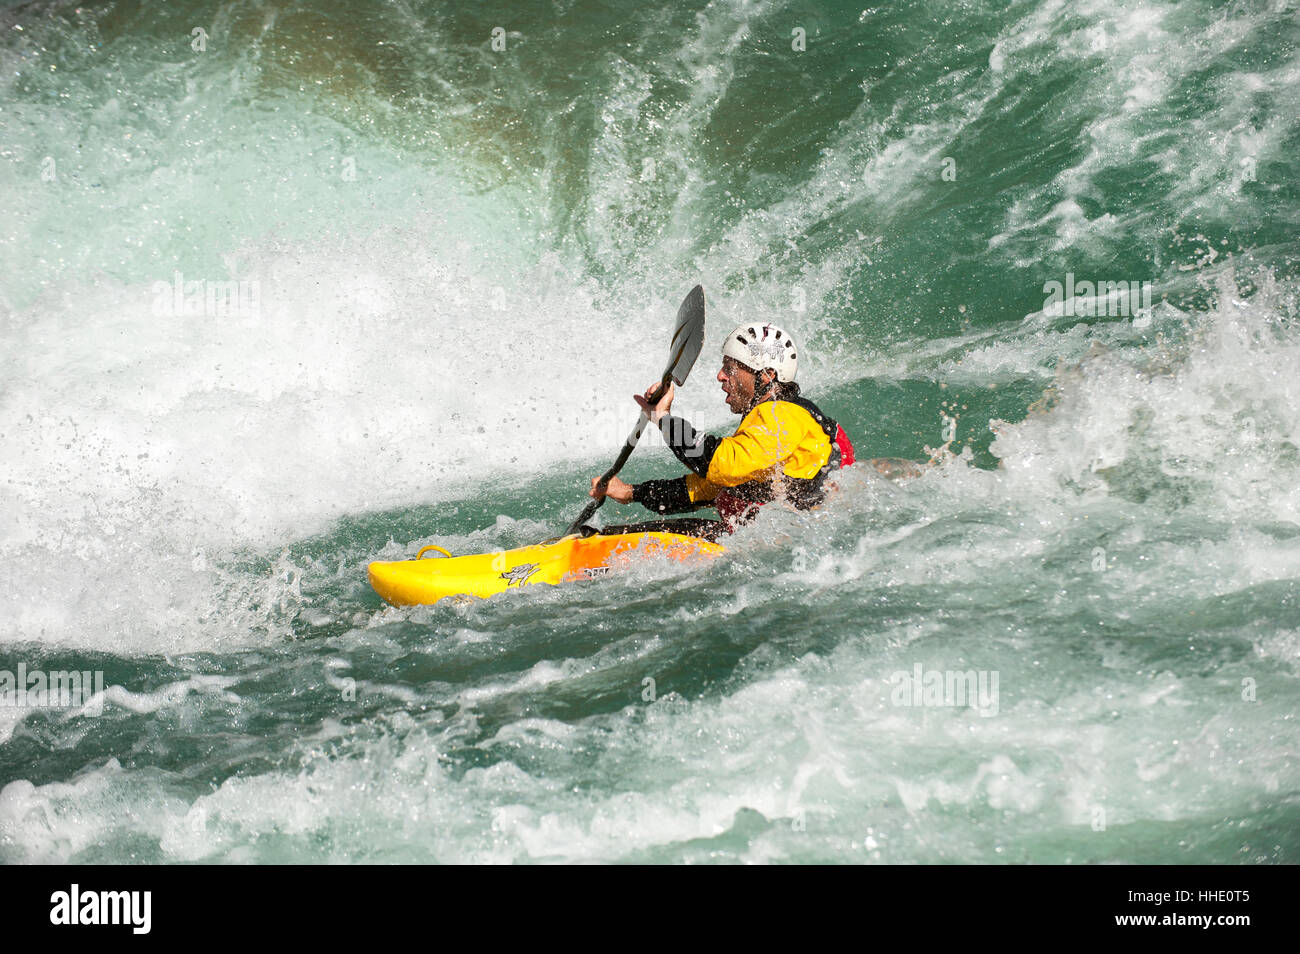 A kayaker negotiates his way through the rapids on the Karnali River, west Nepal - Stock Image